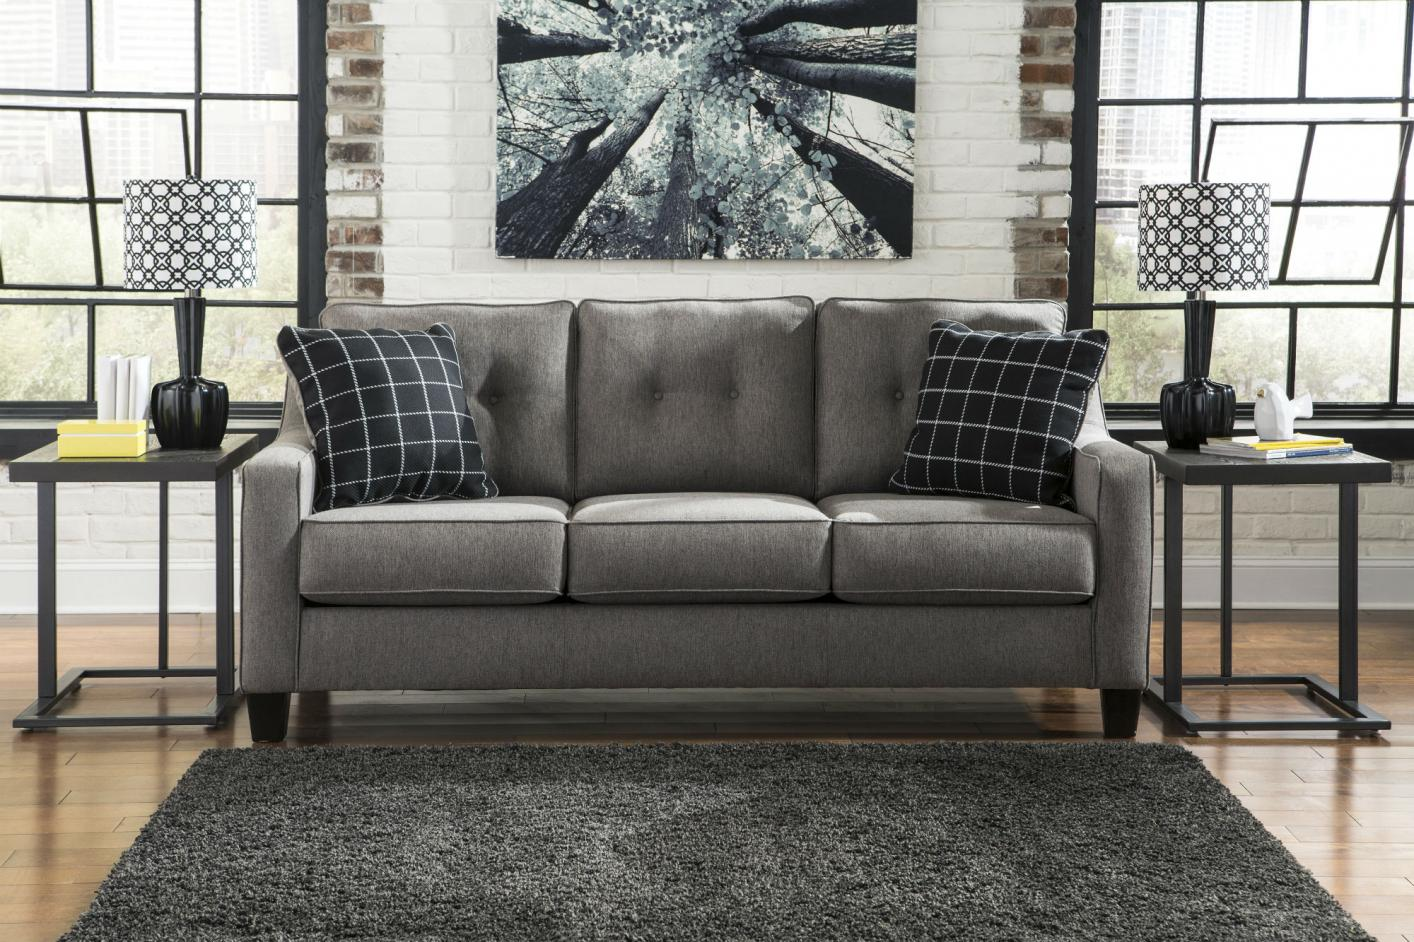 Exceptional Brindon Grey Fabric Sofa